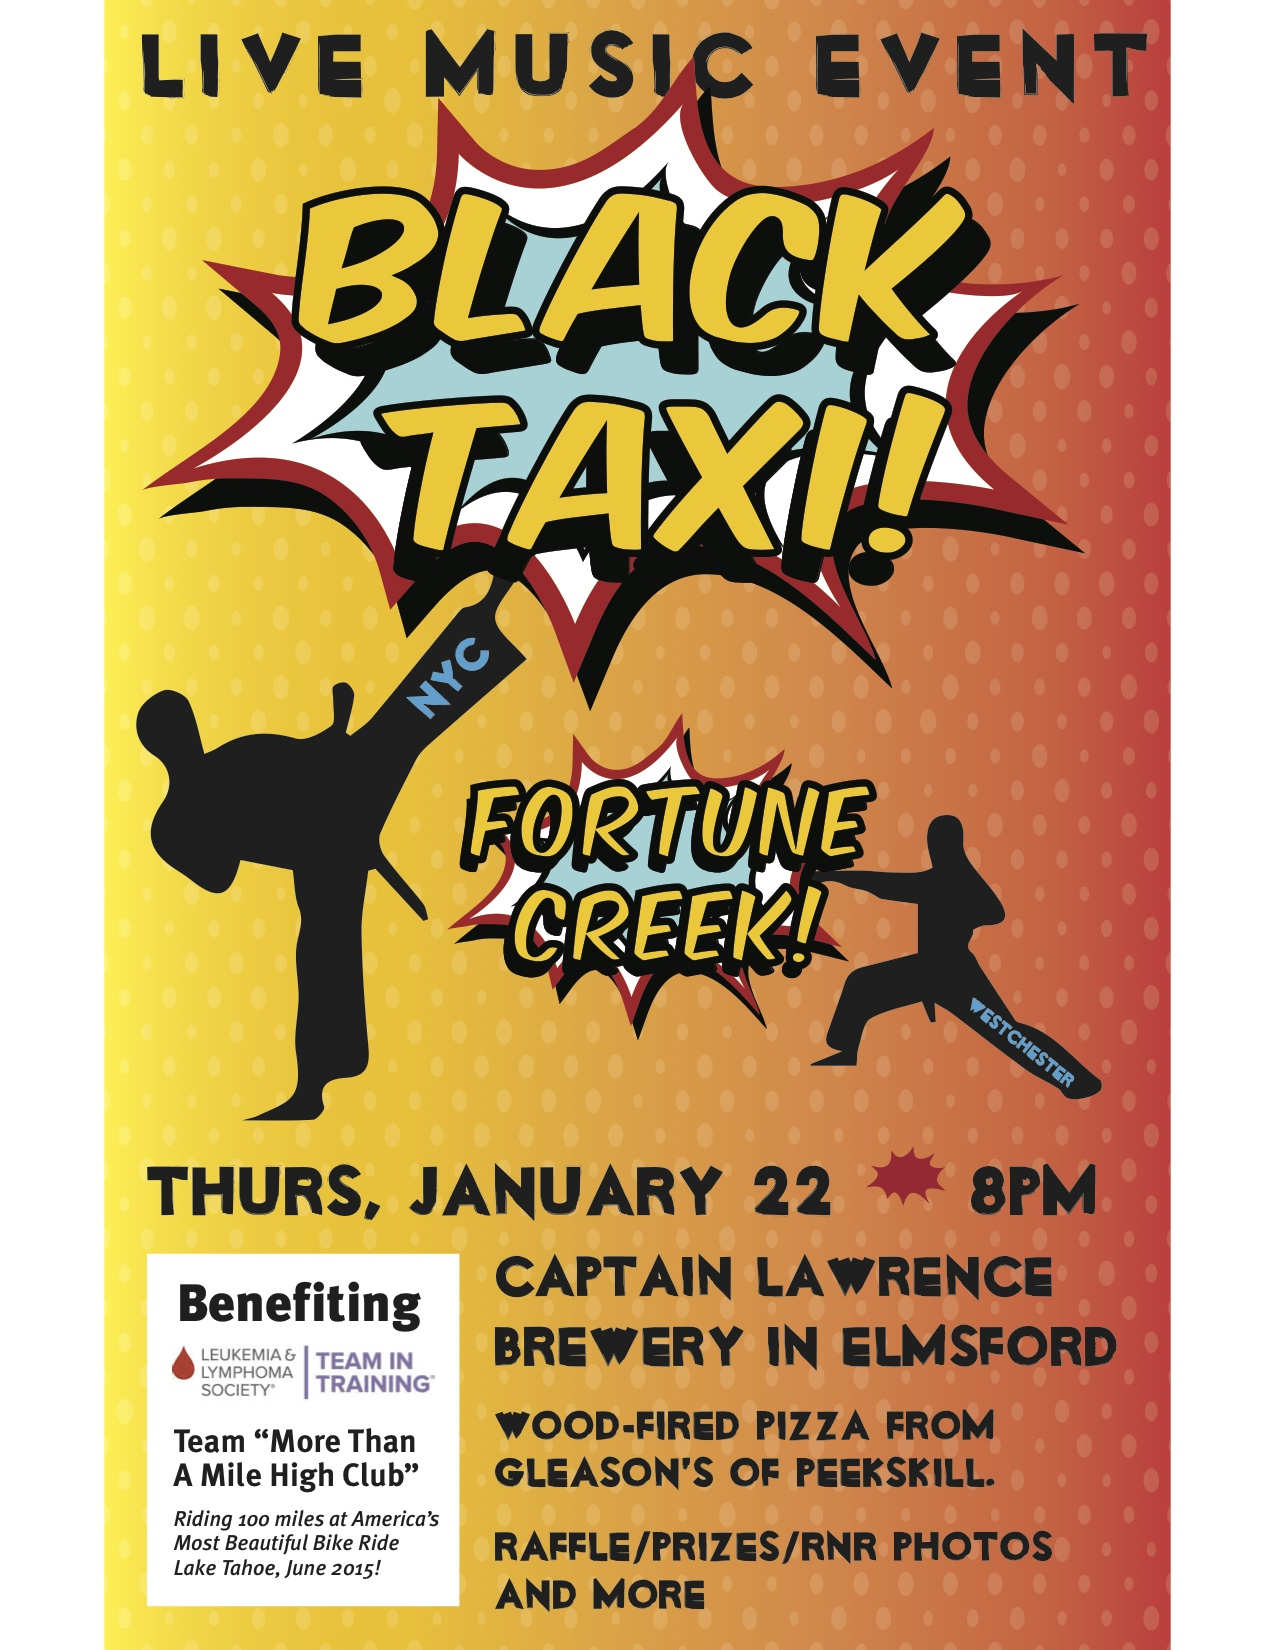 Next Charity Concert Featuring Black Taxi